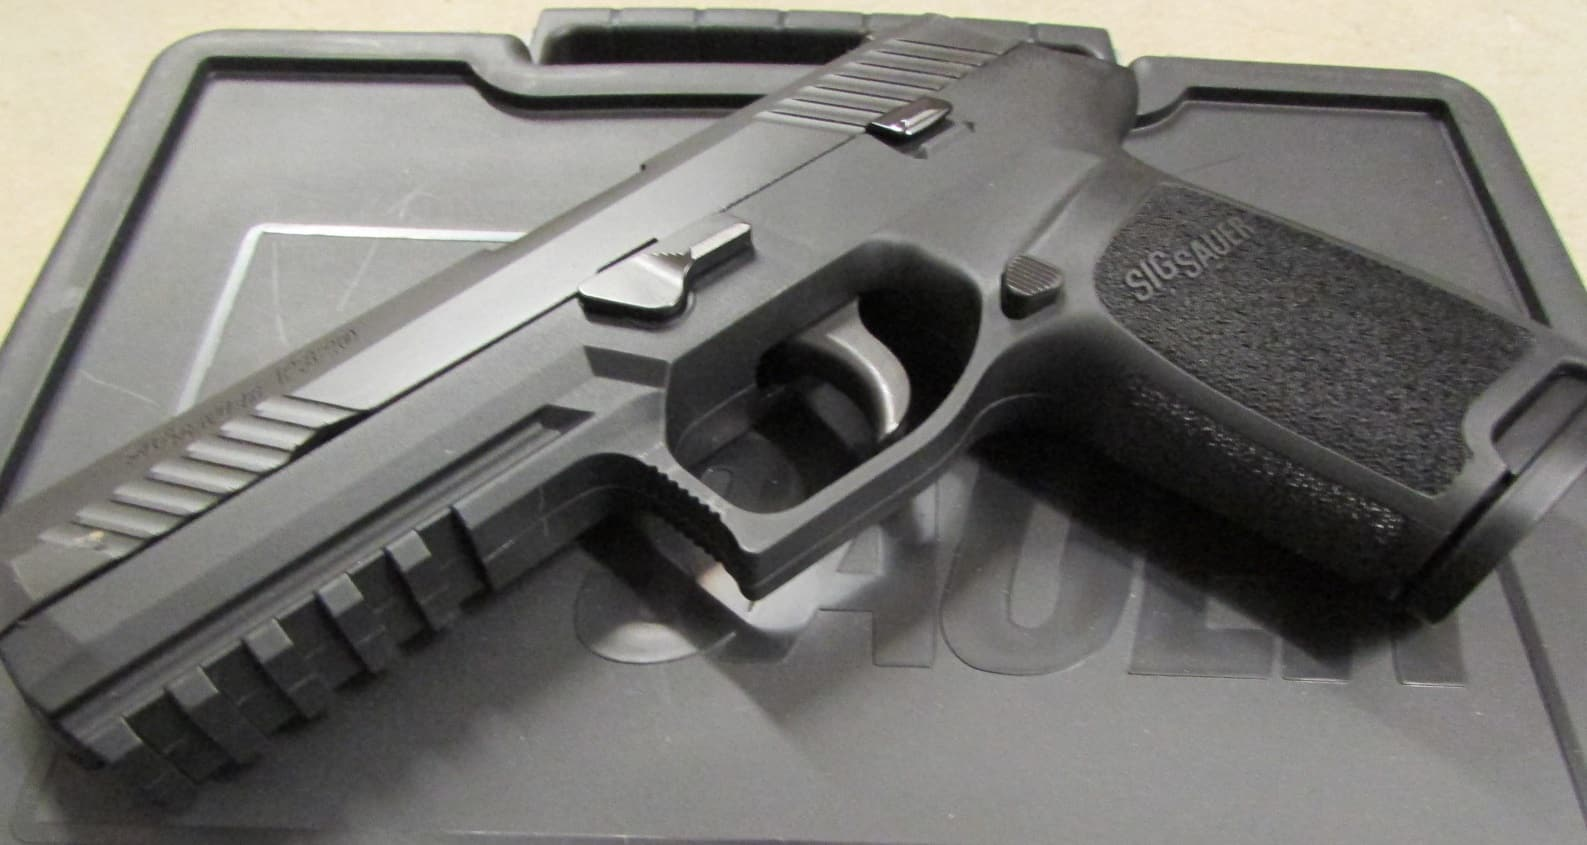 What's Special About the SIG P320